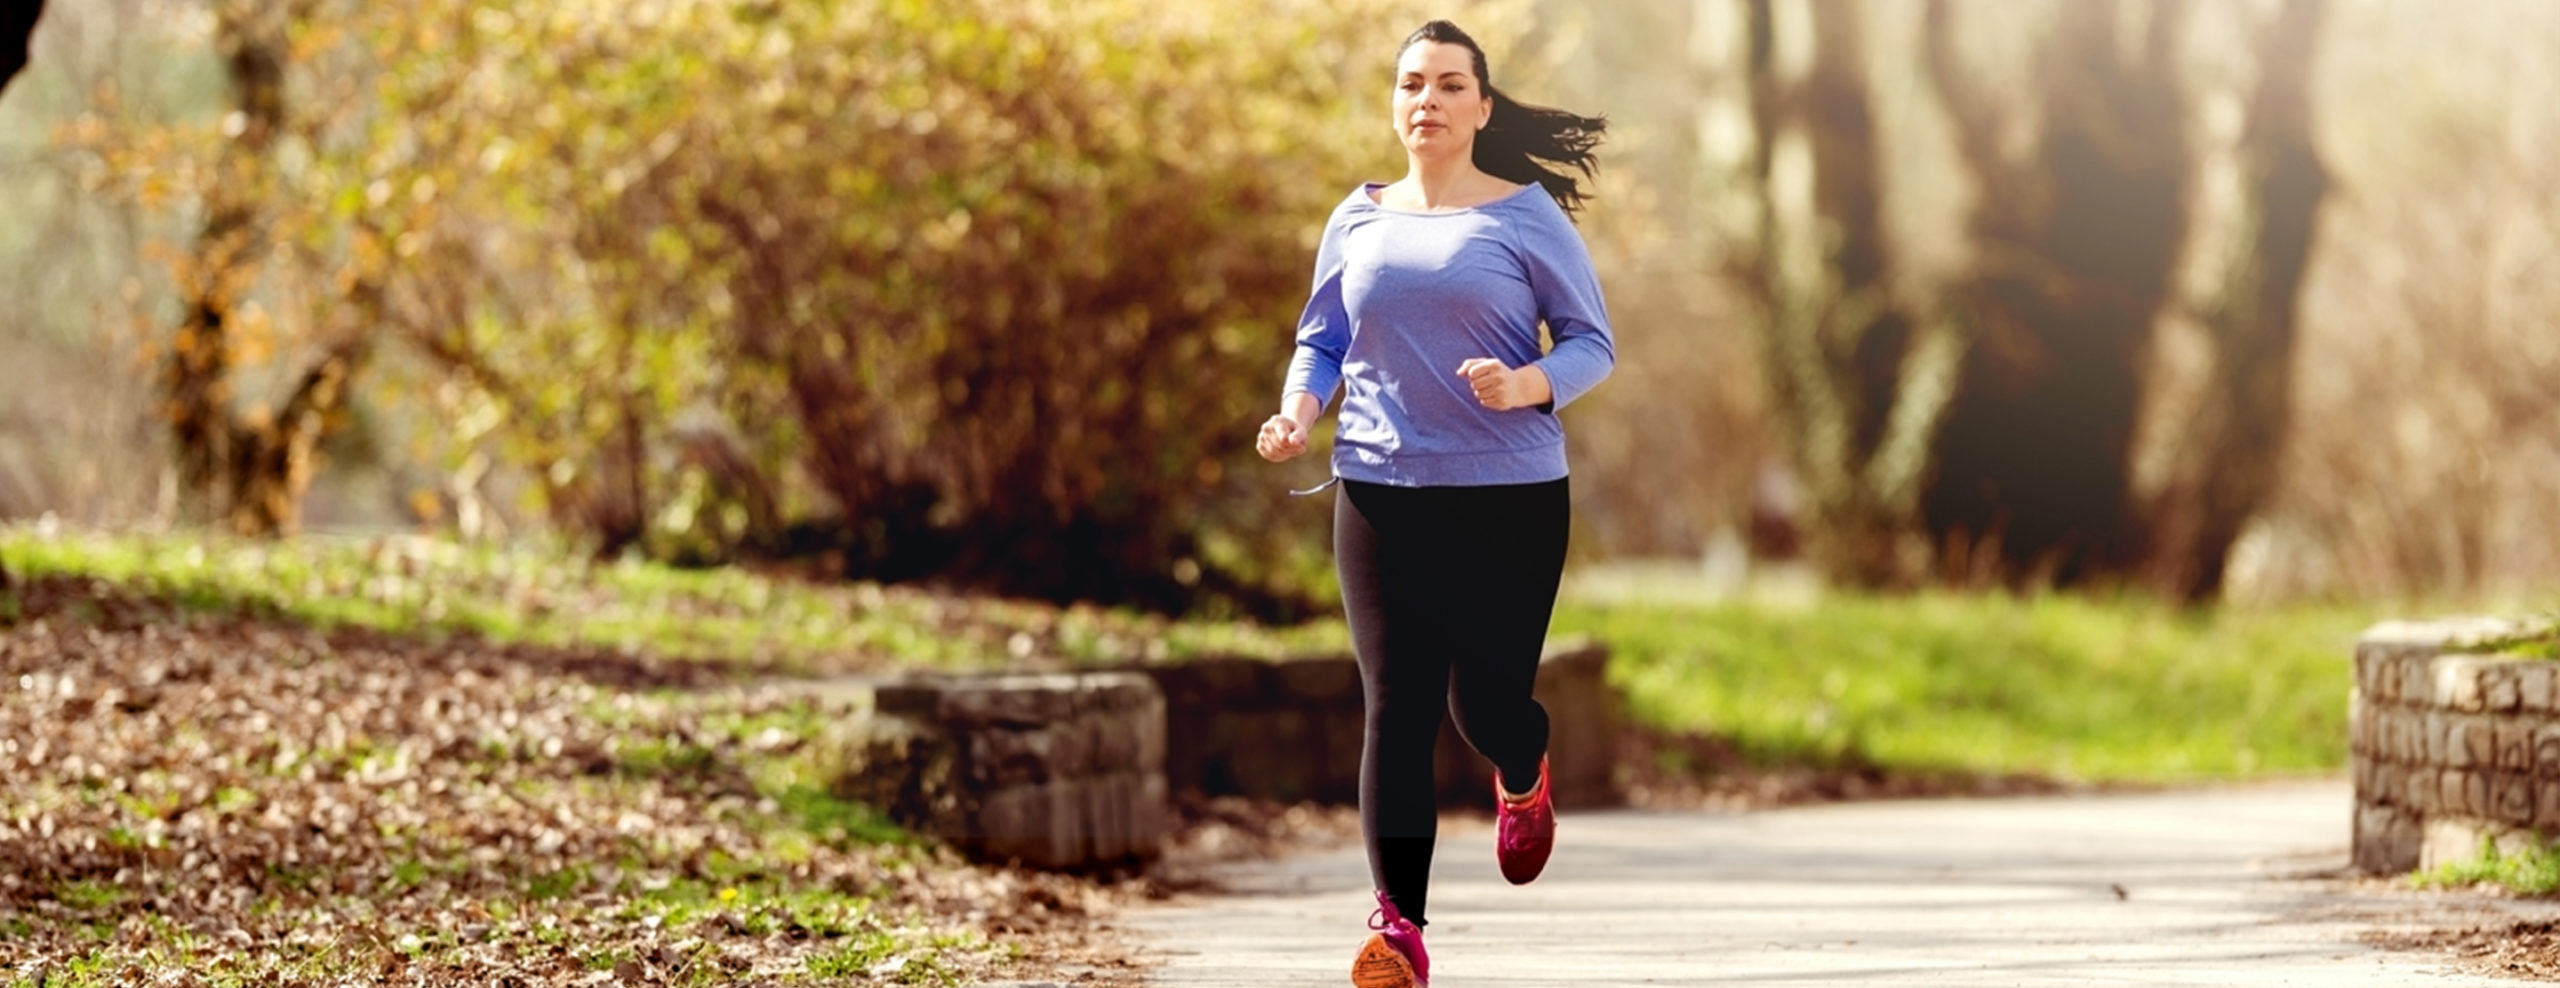 Tips to Get Motivated to Lose Weight